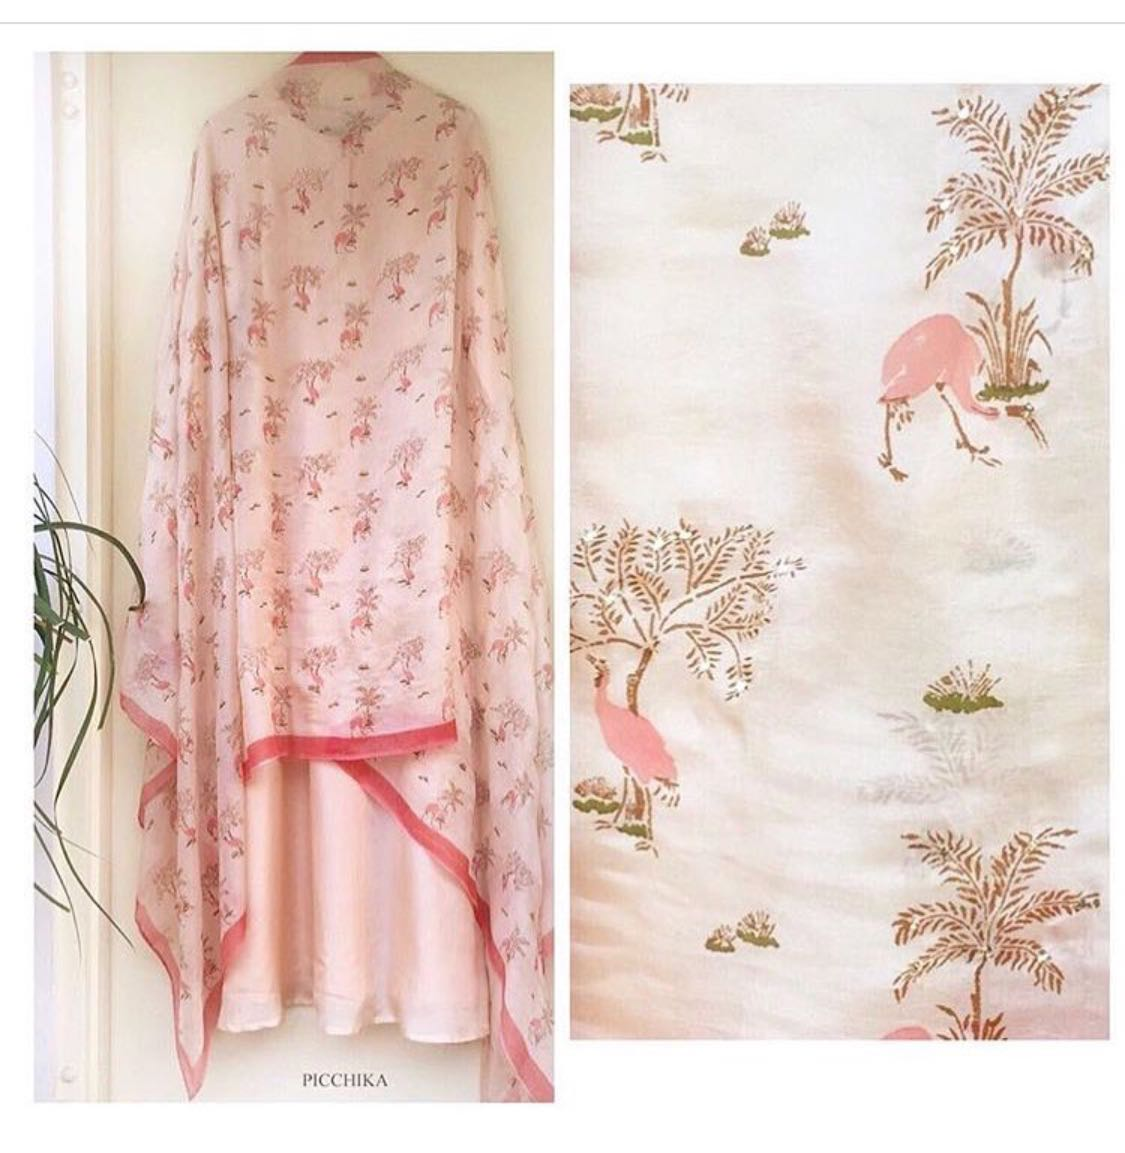 Flamingo's in PEACH